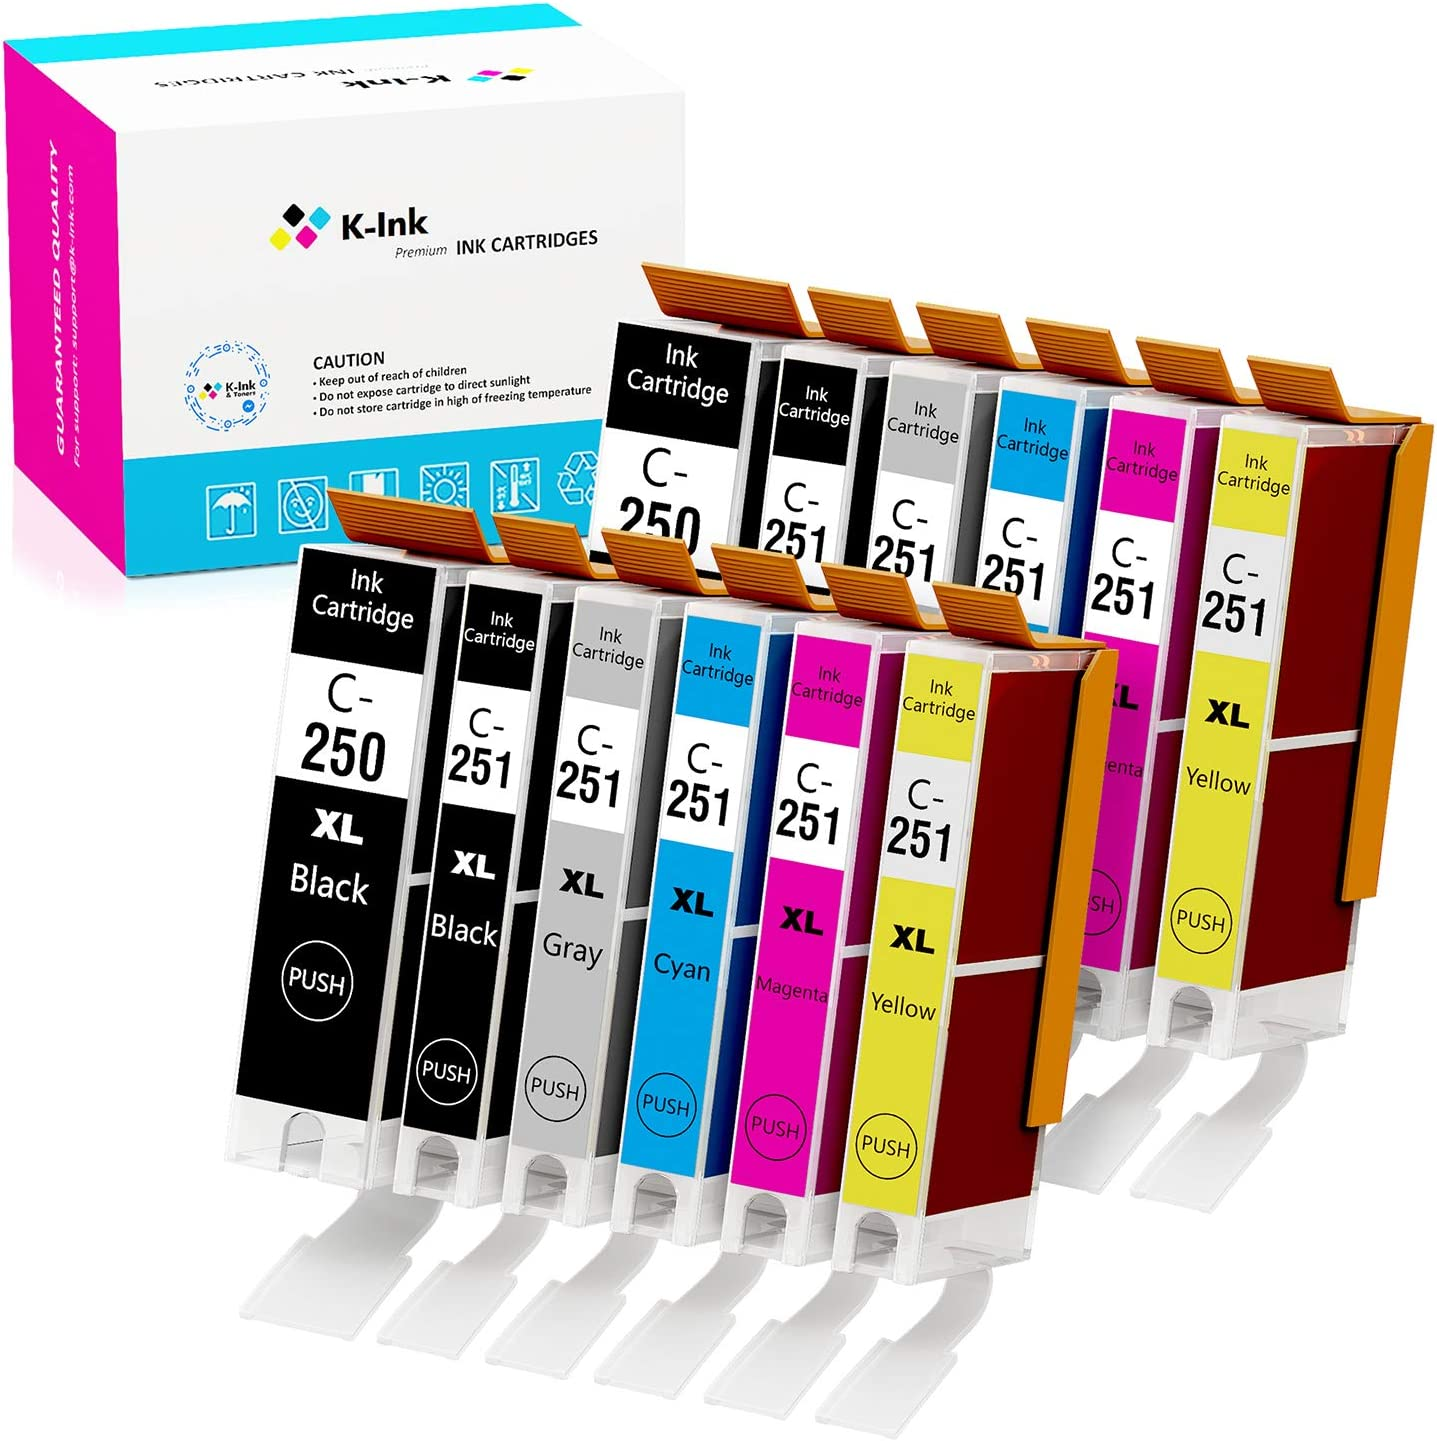 K-Ink Compatible Ink Cartridge Replacement for Canon PGI-250 CLI-251 PGI 250 CLI 251 XL (12 Pack - 2 Large Black, 2 Small Black, 2 Cyan, 2 Yellow, 2 Magenta, 2 Gray)